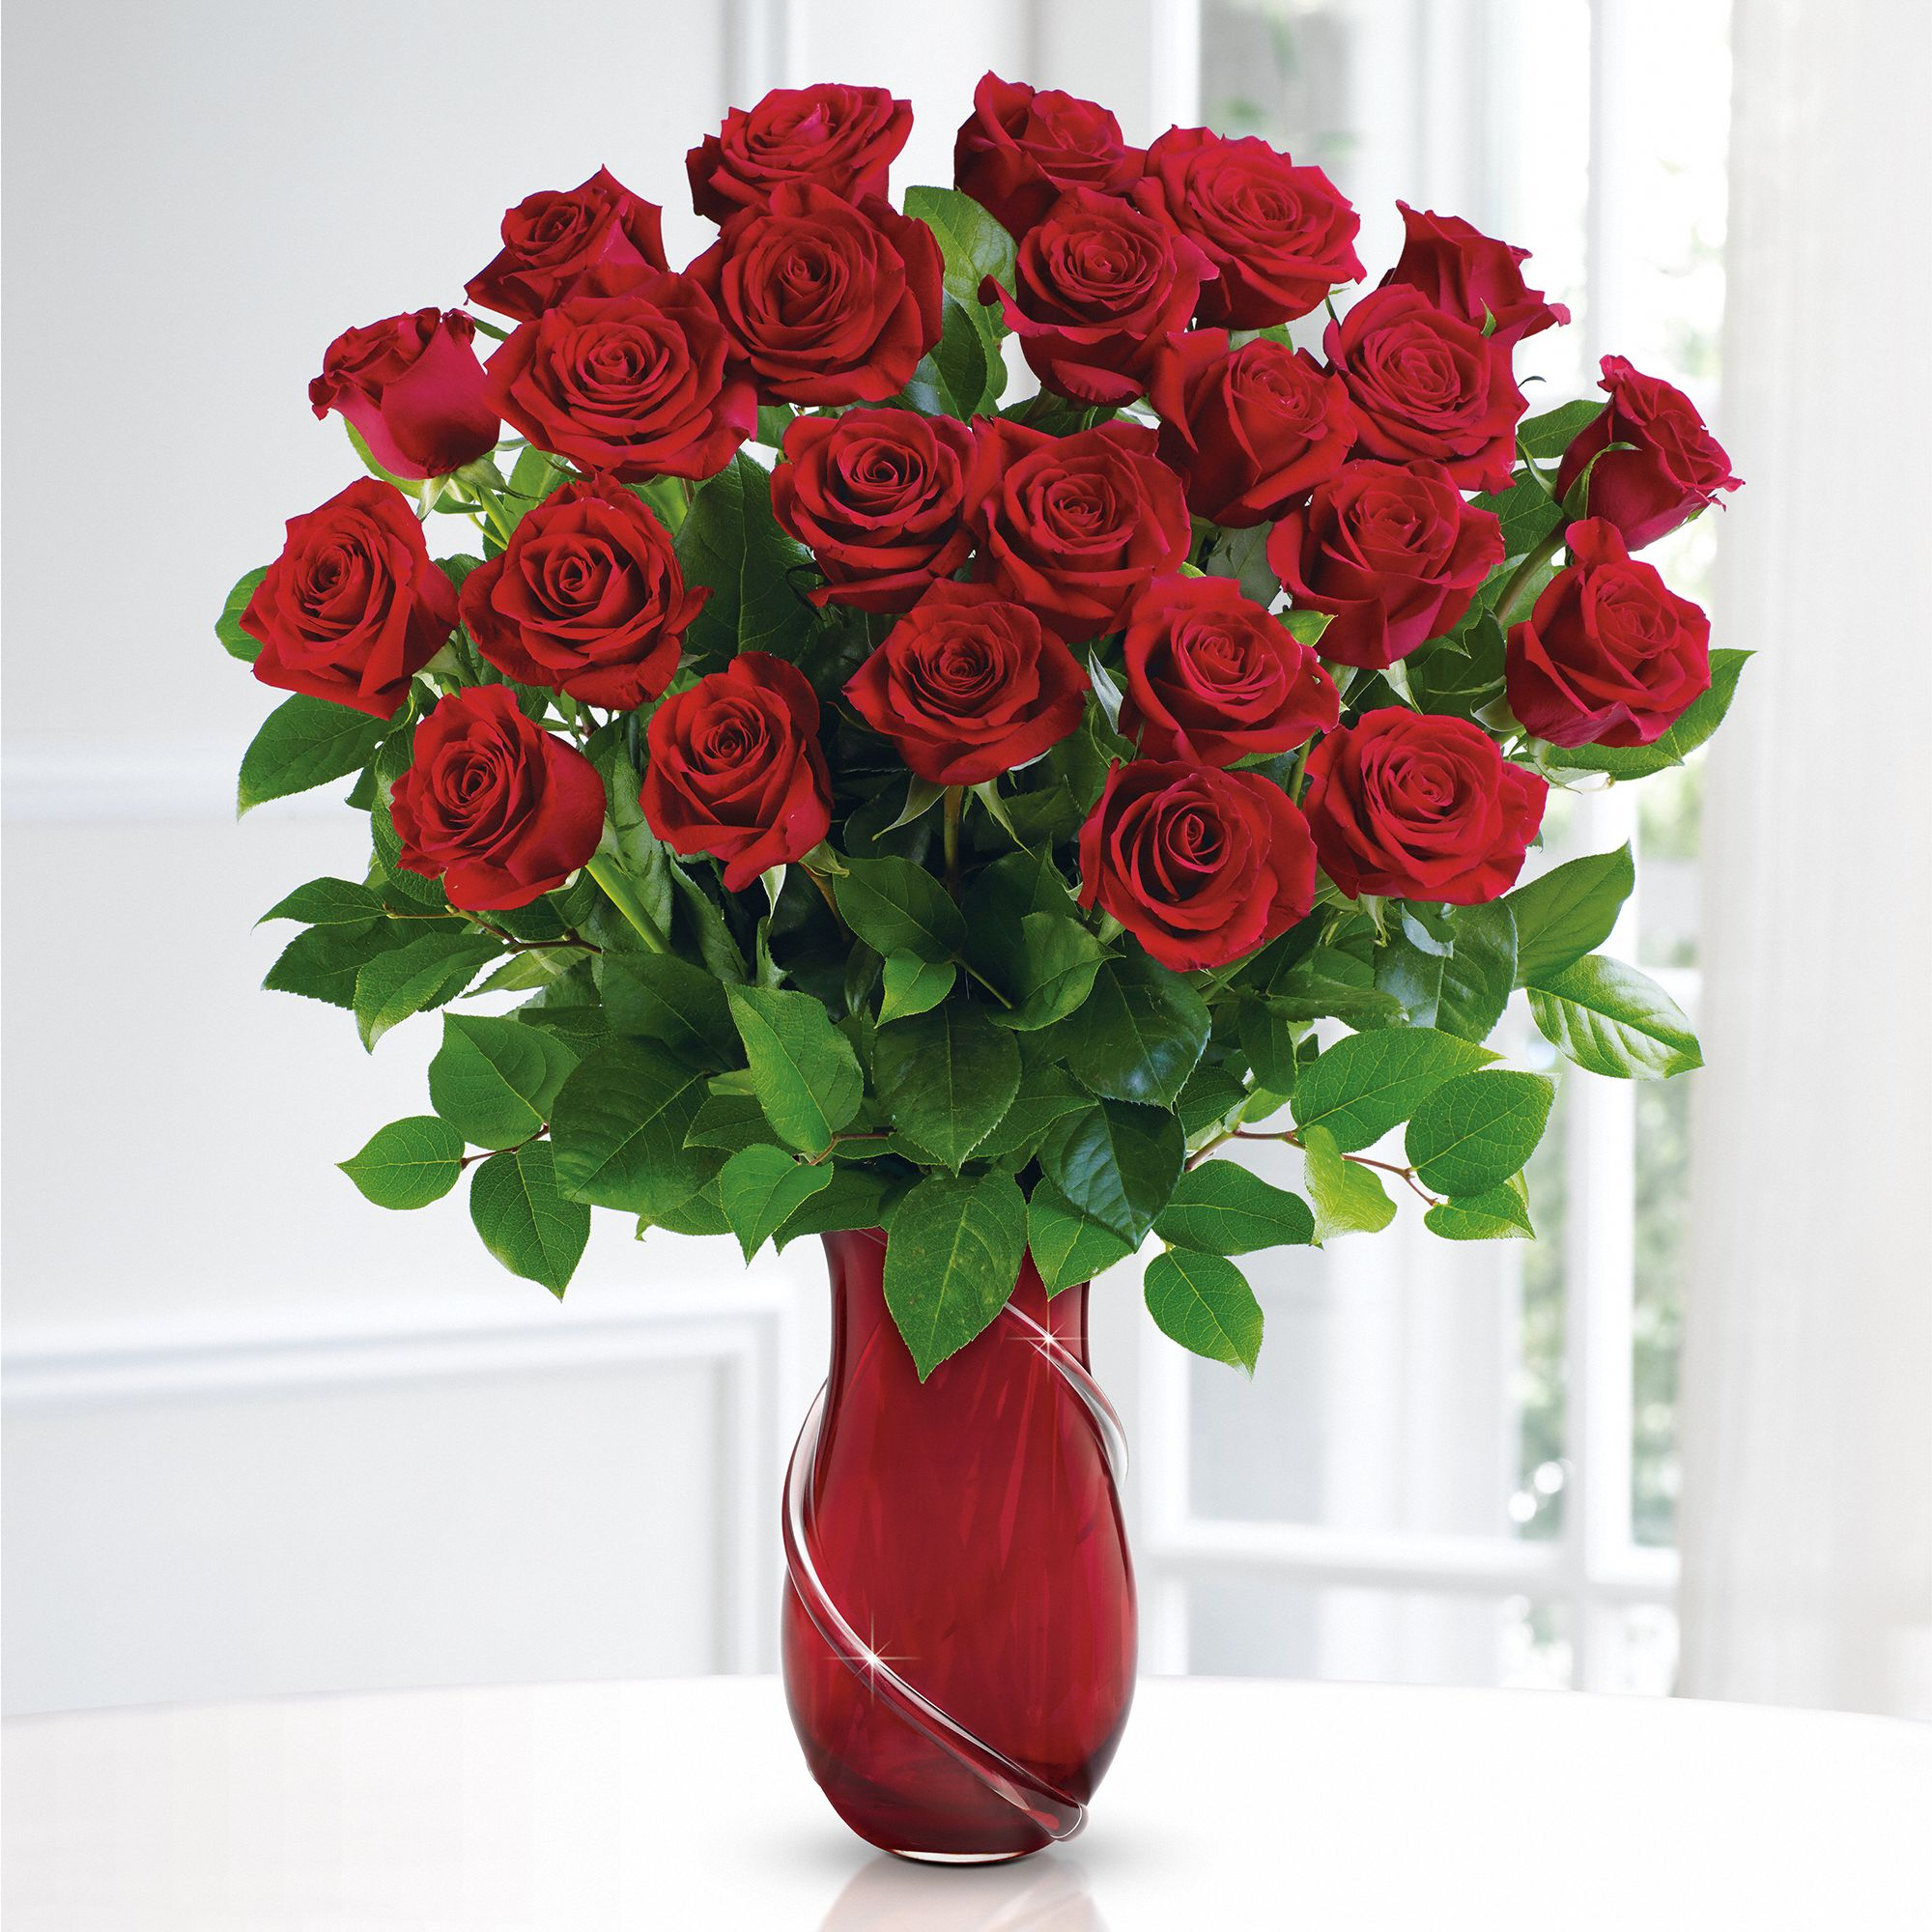 Teleflora's Wrapped In Roses Valentine's Bouquet - two dozen red roses in a keepsake vase